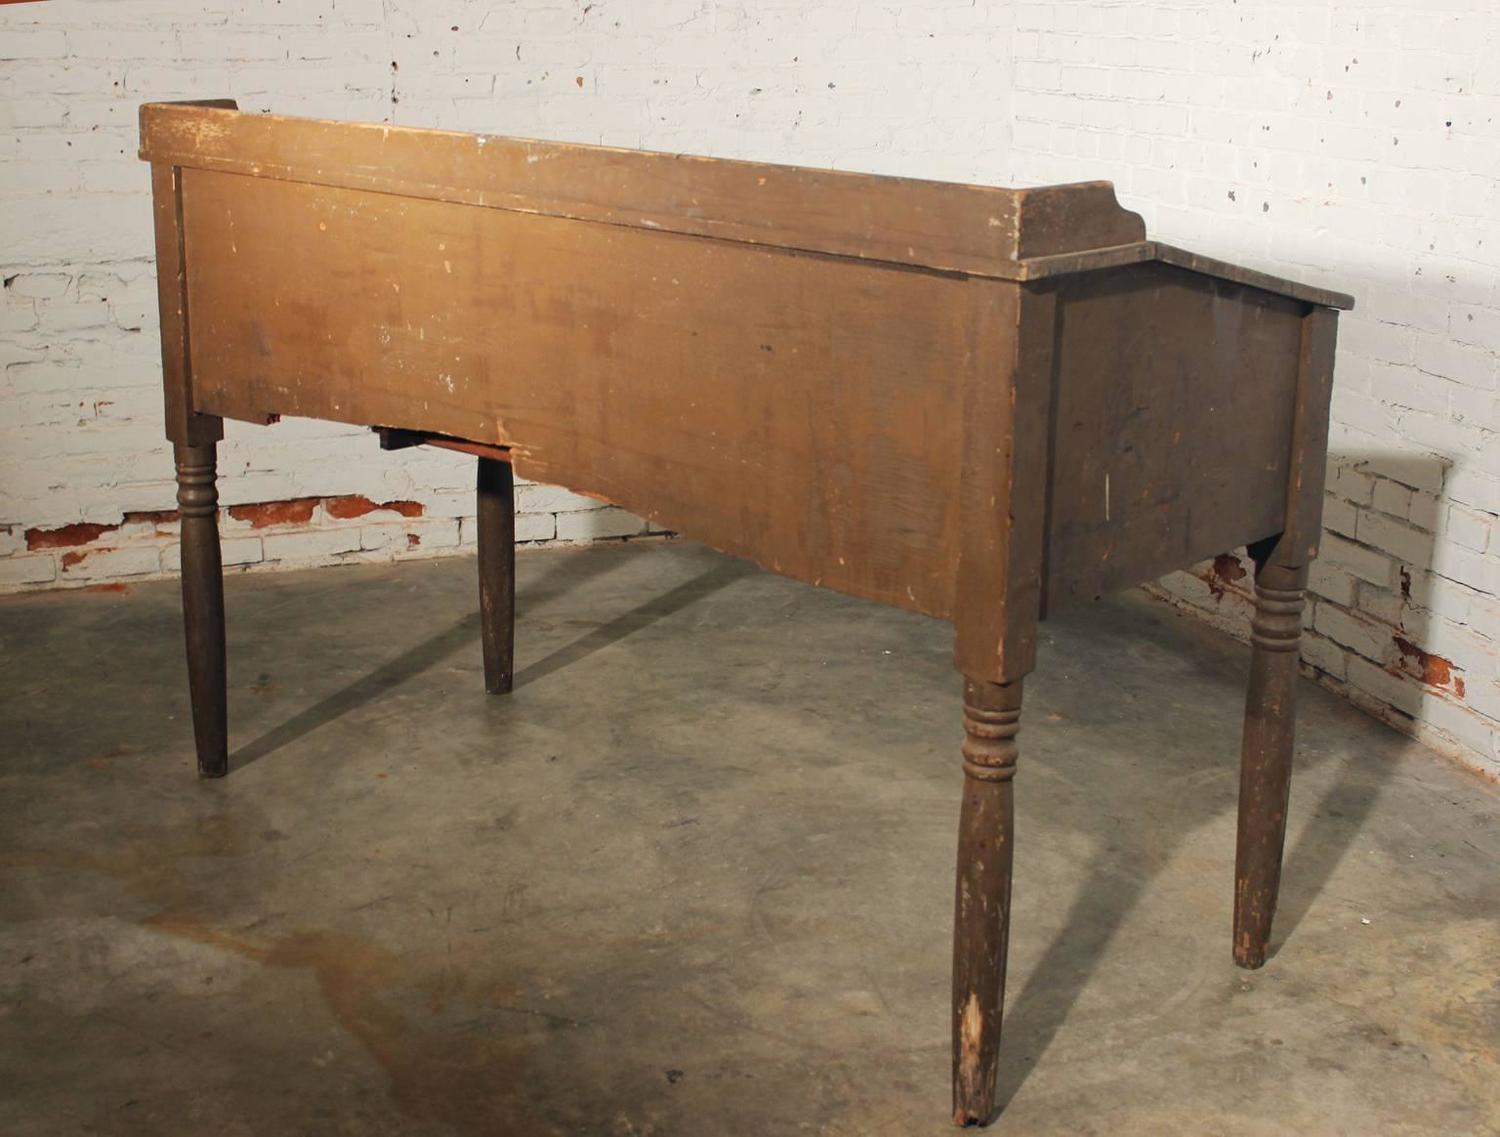 Thumb Through #90633B Antique Primitive Wood Standing Desk For Sale At  1stdibs with 2168 Reliable - Reliable Vintage Wood Desks, Wood Ottoman Modern, Wood Panels Imgs